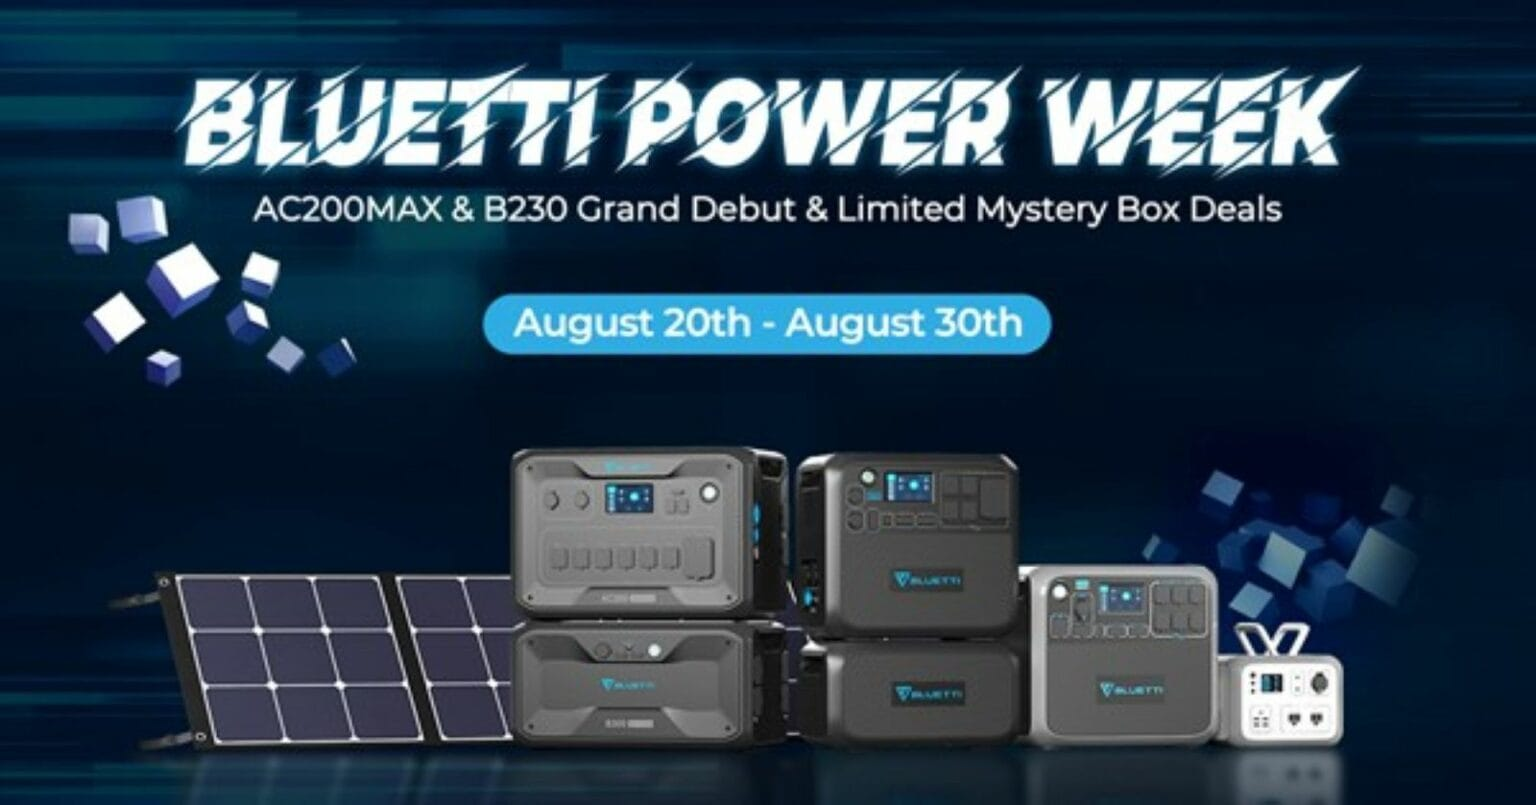 Bluetti Power Week sees the introduction of new products and special deals.